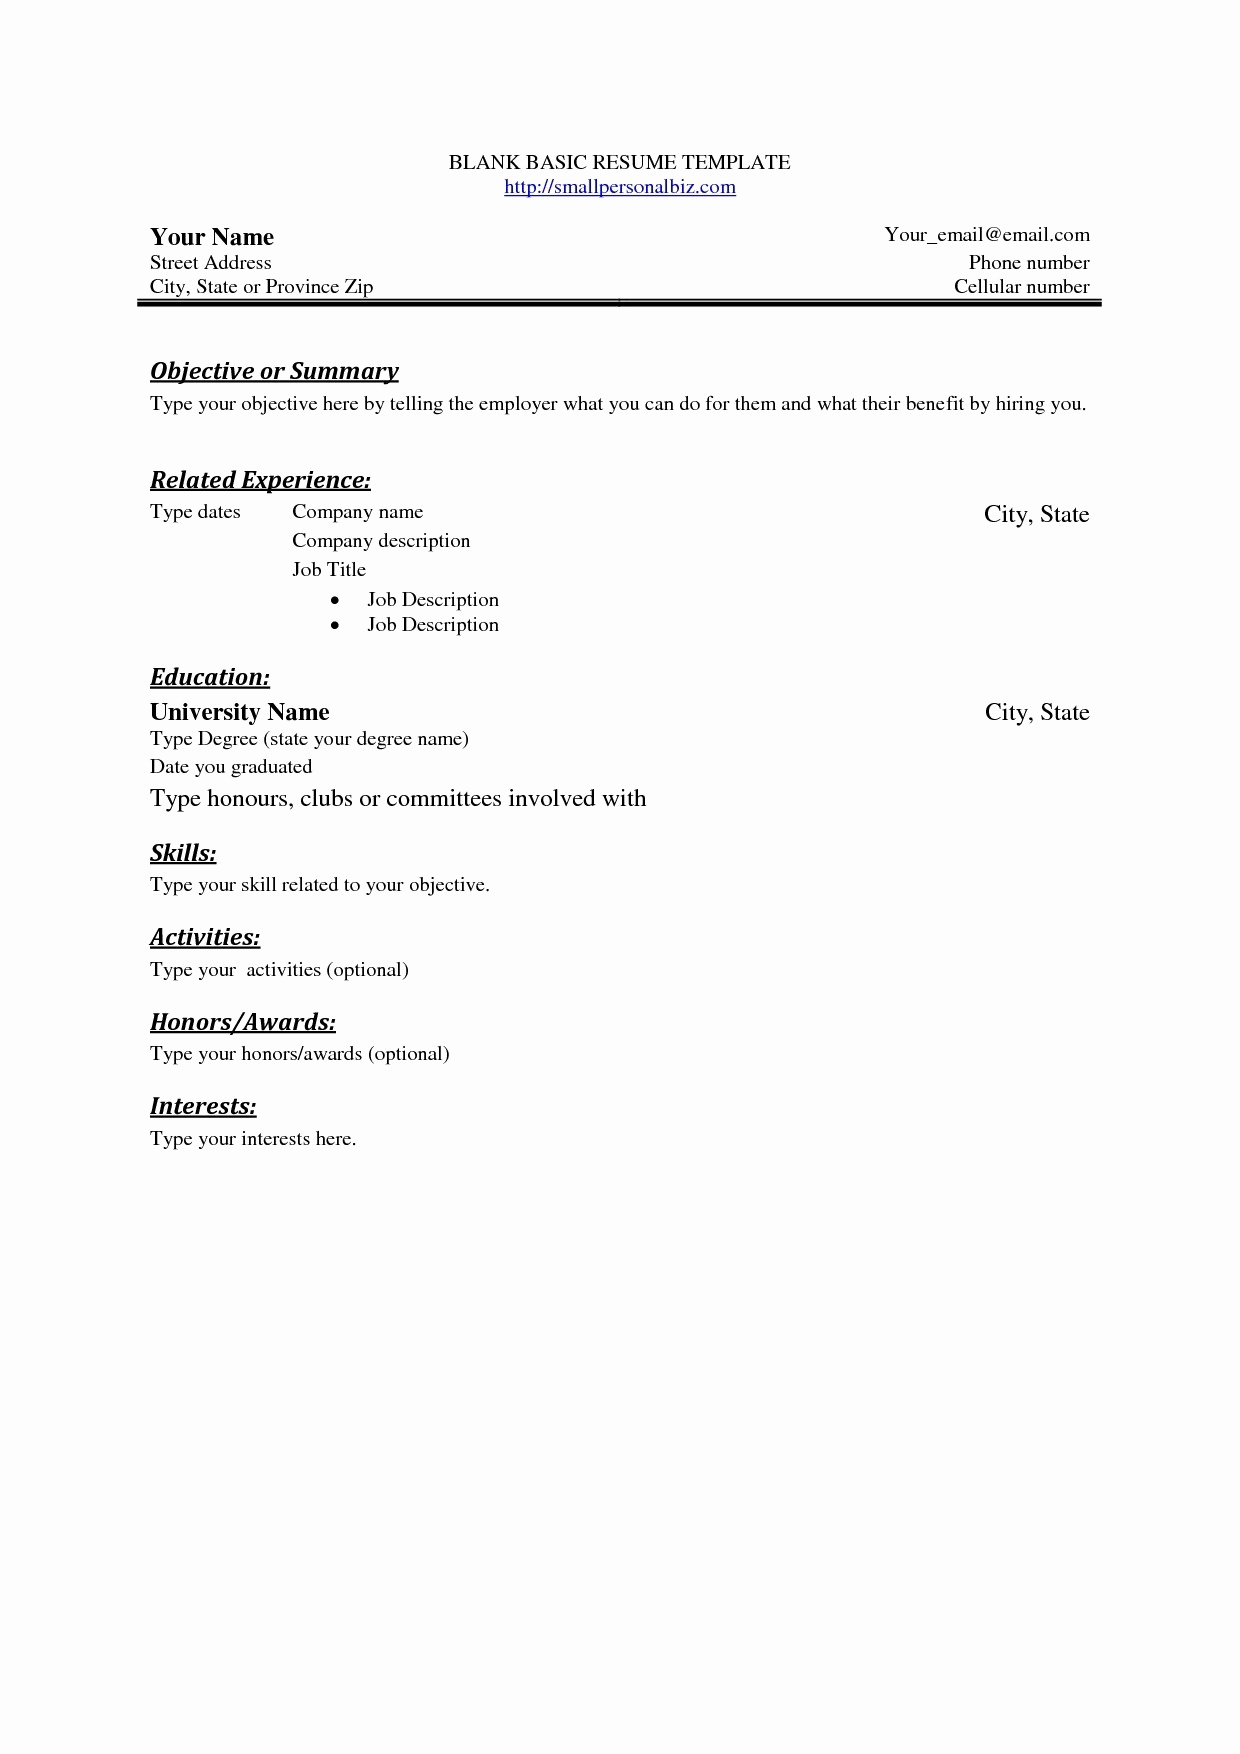 Resume Craigslist - Post Resume Craigslist New Reference Search Resumes Craigslist